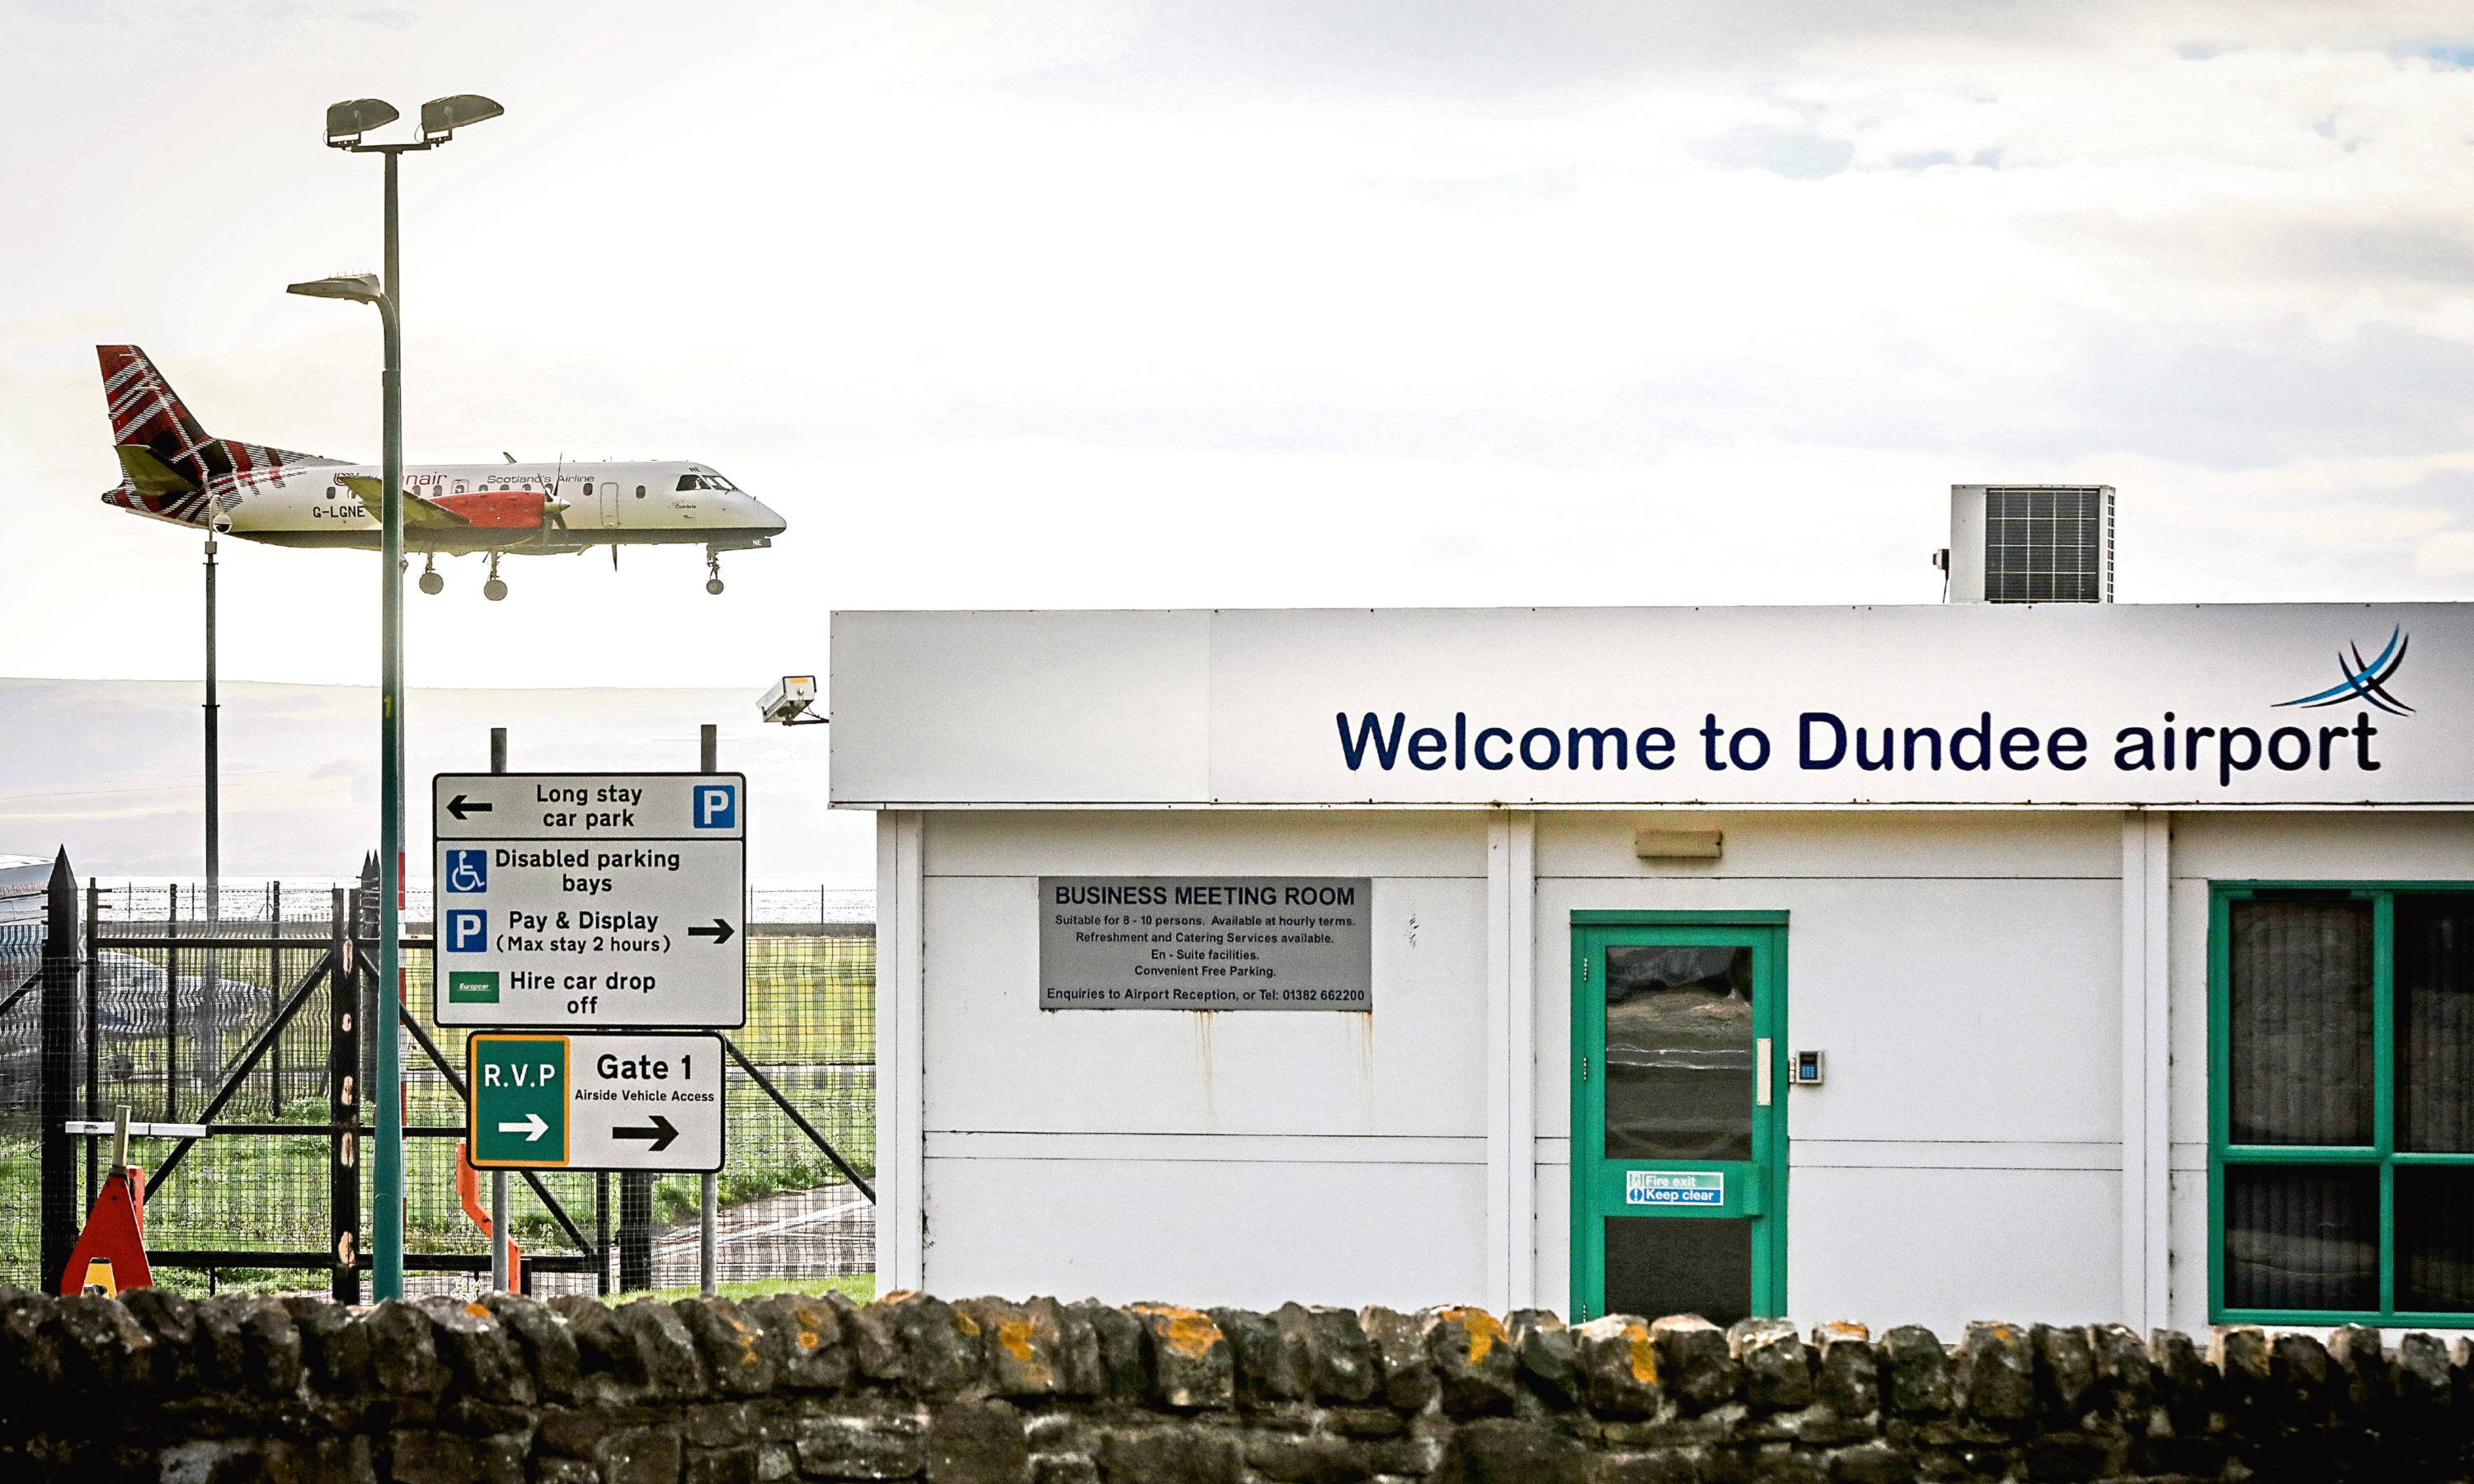 A plane landing at Dundee Airport.